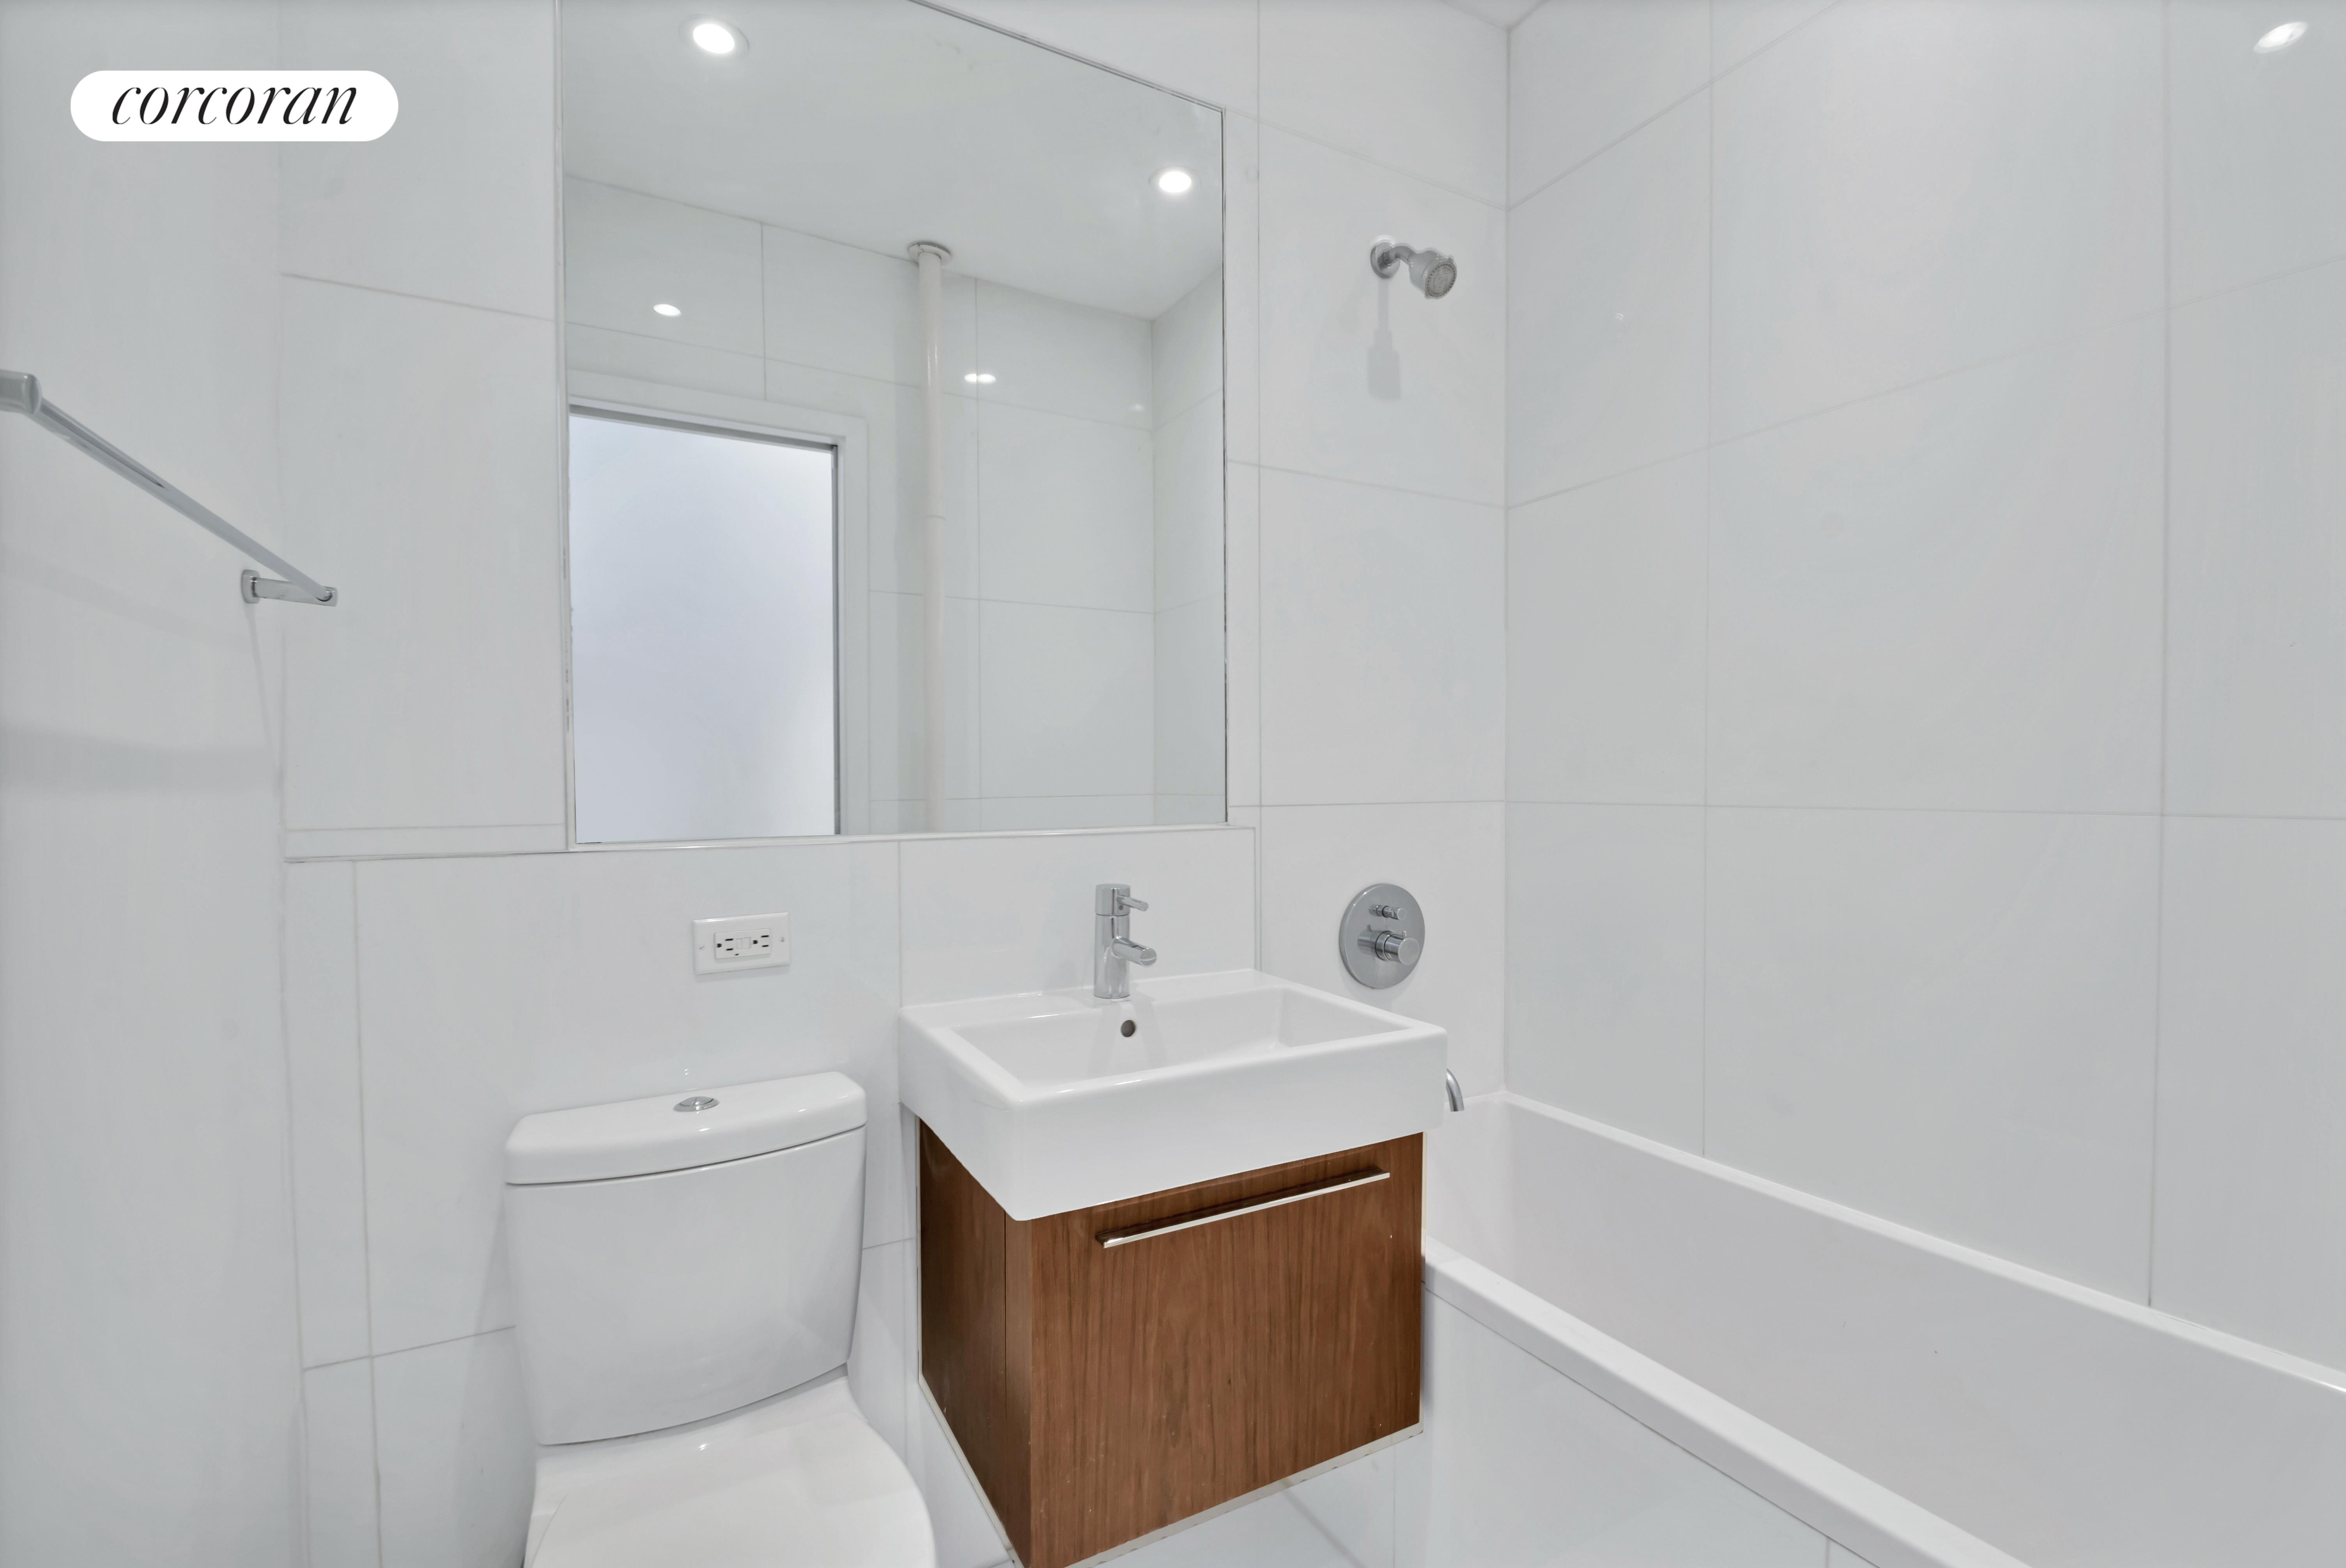 Apartment for sale at 434 West 47th Street, Apt 2W